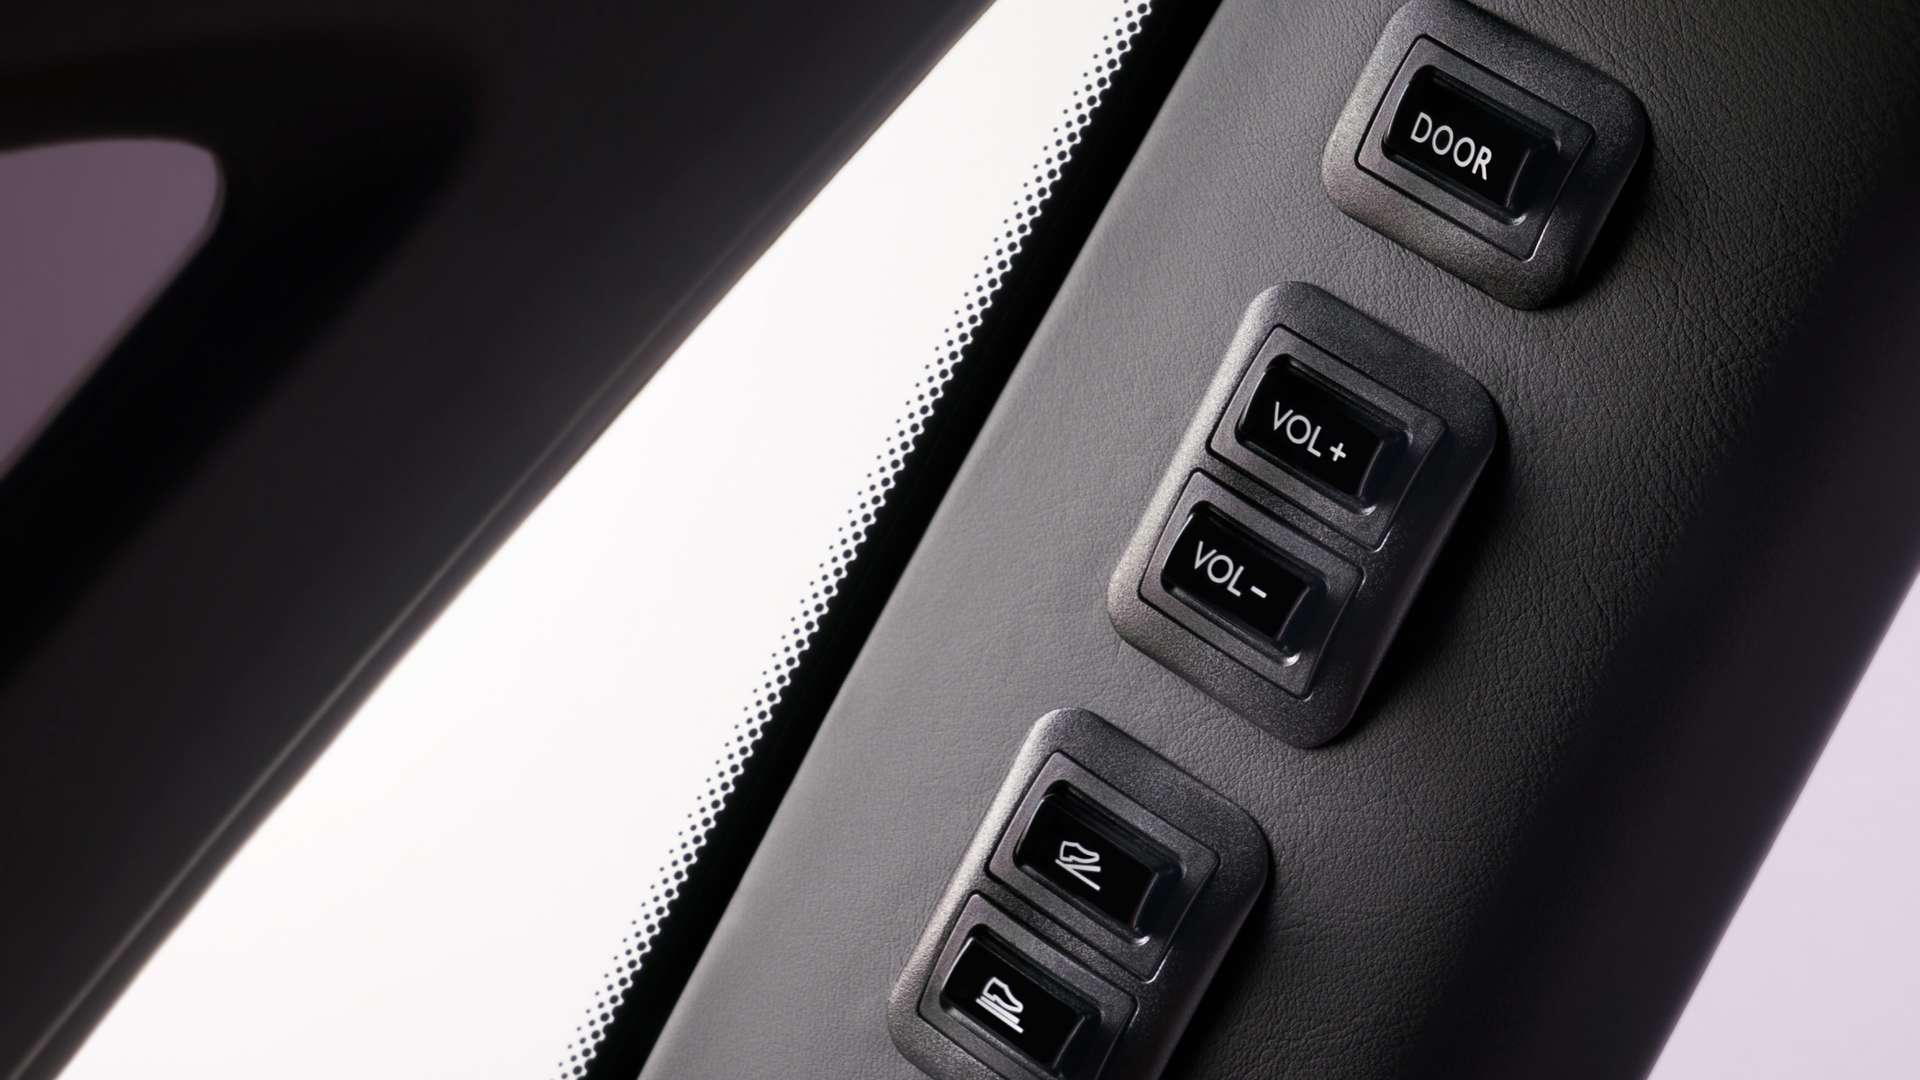 The button controls on a Rolls-Royce Phantom EWB model